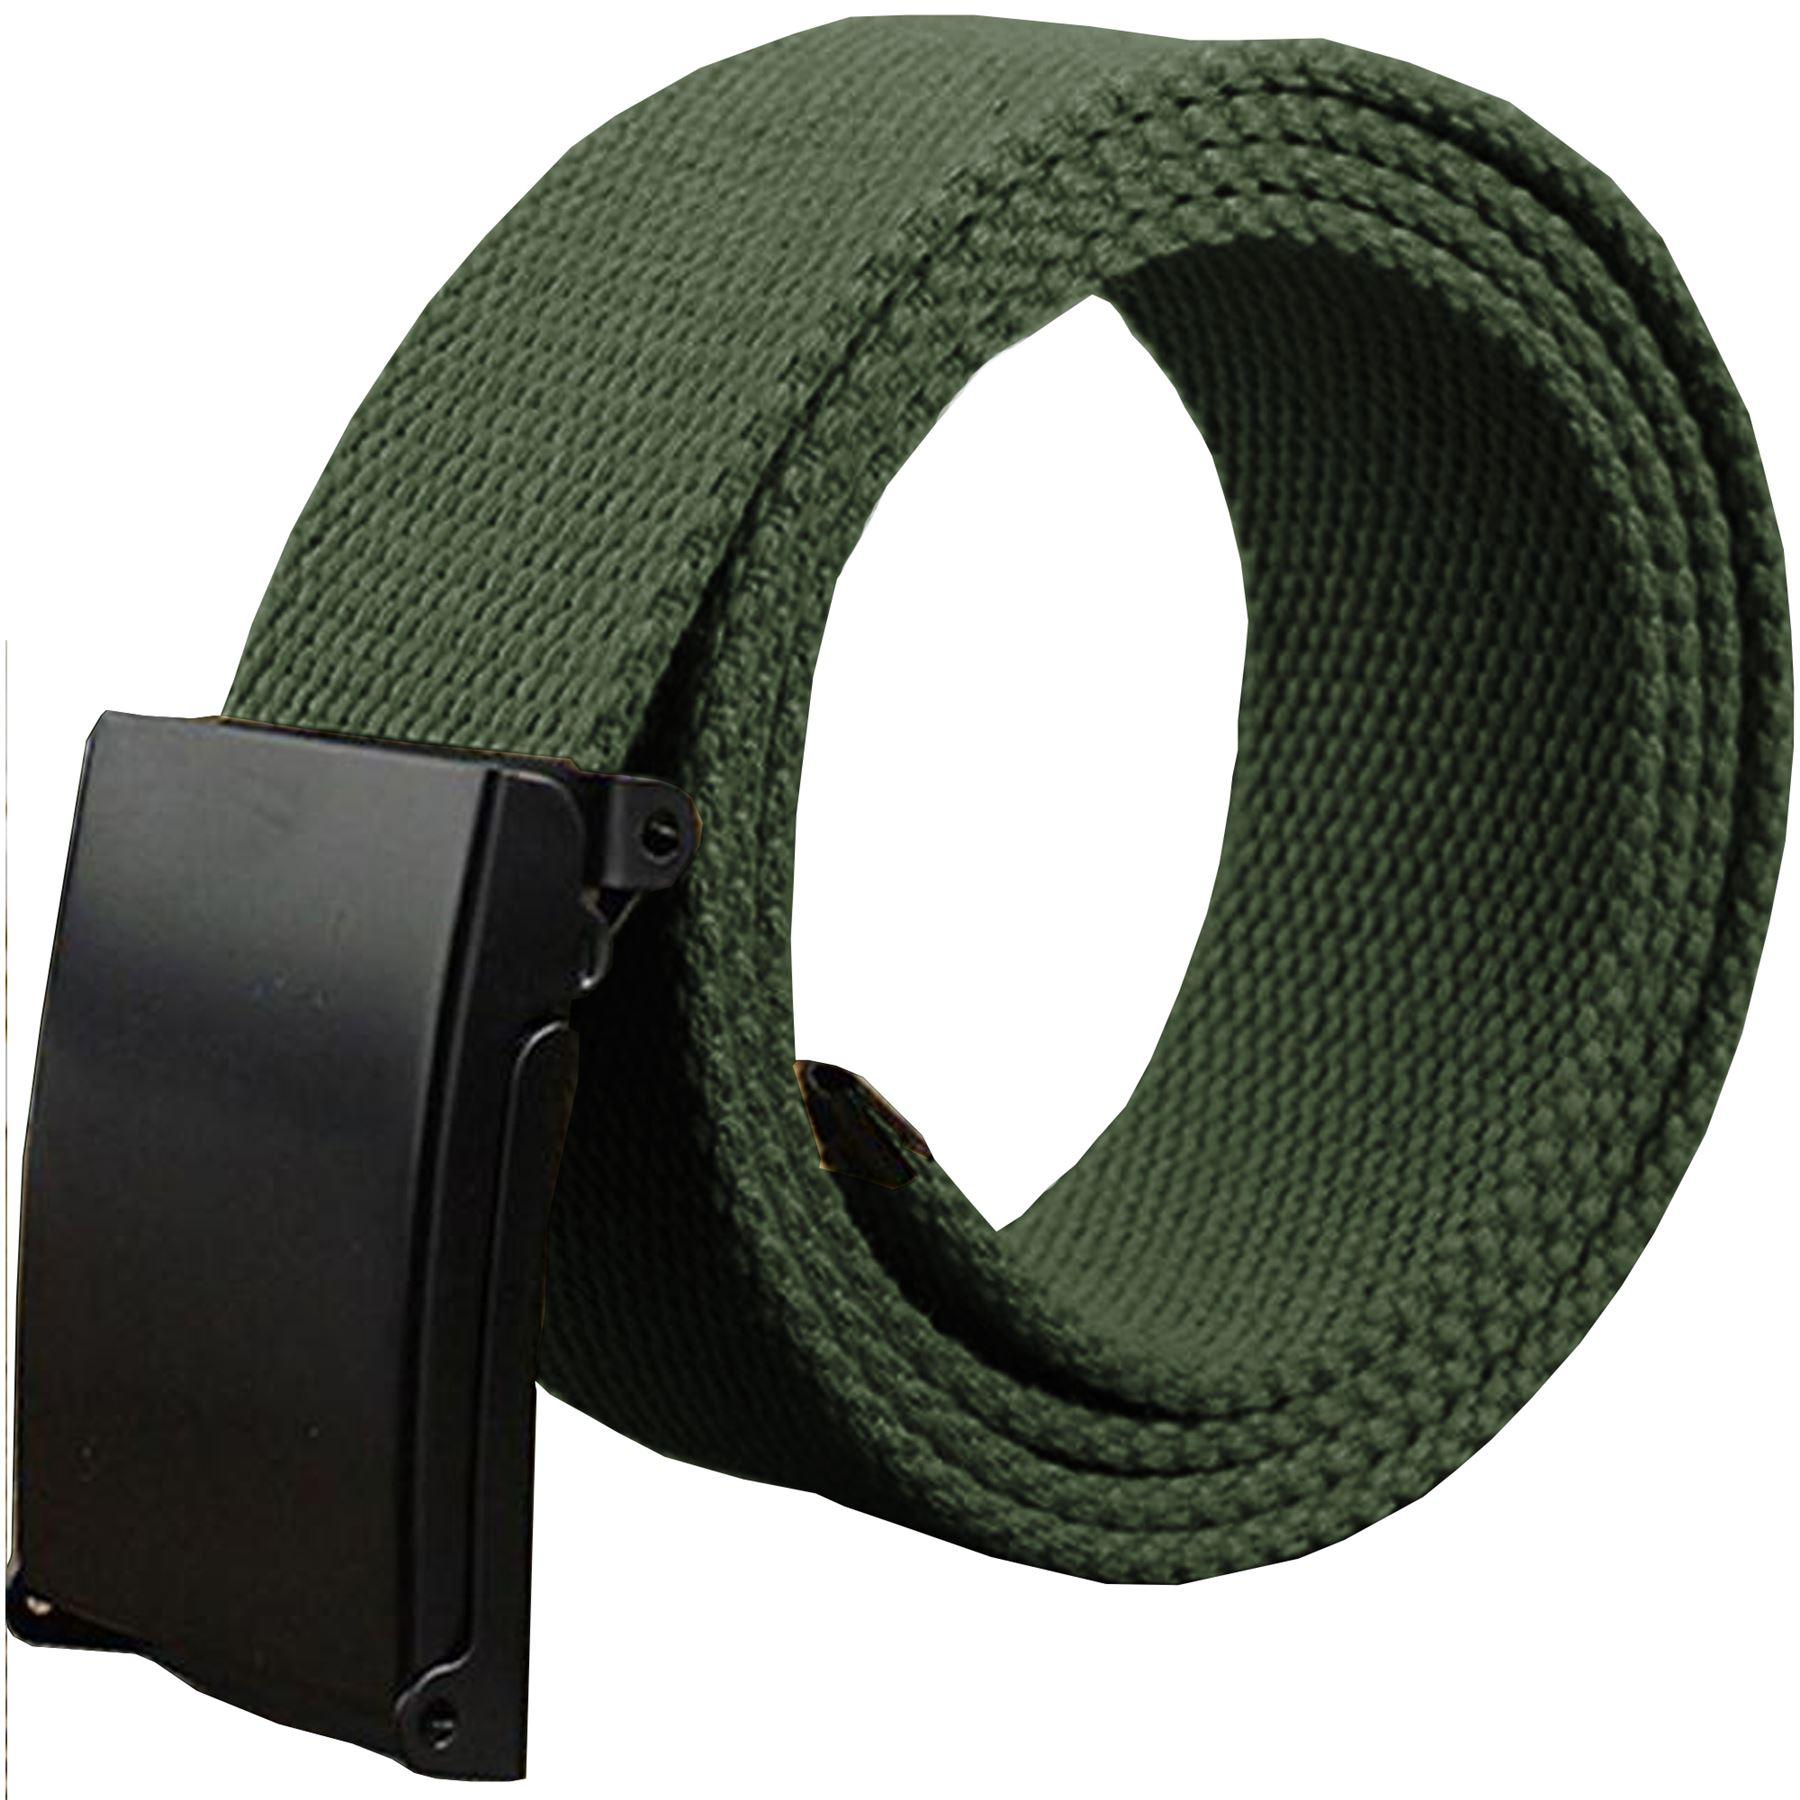 Kruze-Mens-Womens-Unisex-Canvas-Webbing-Belt-Regular-Big-Size-Buckle-Army-Belts Indexbild 15